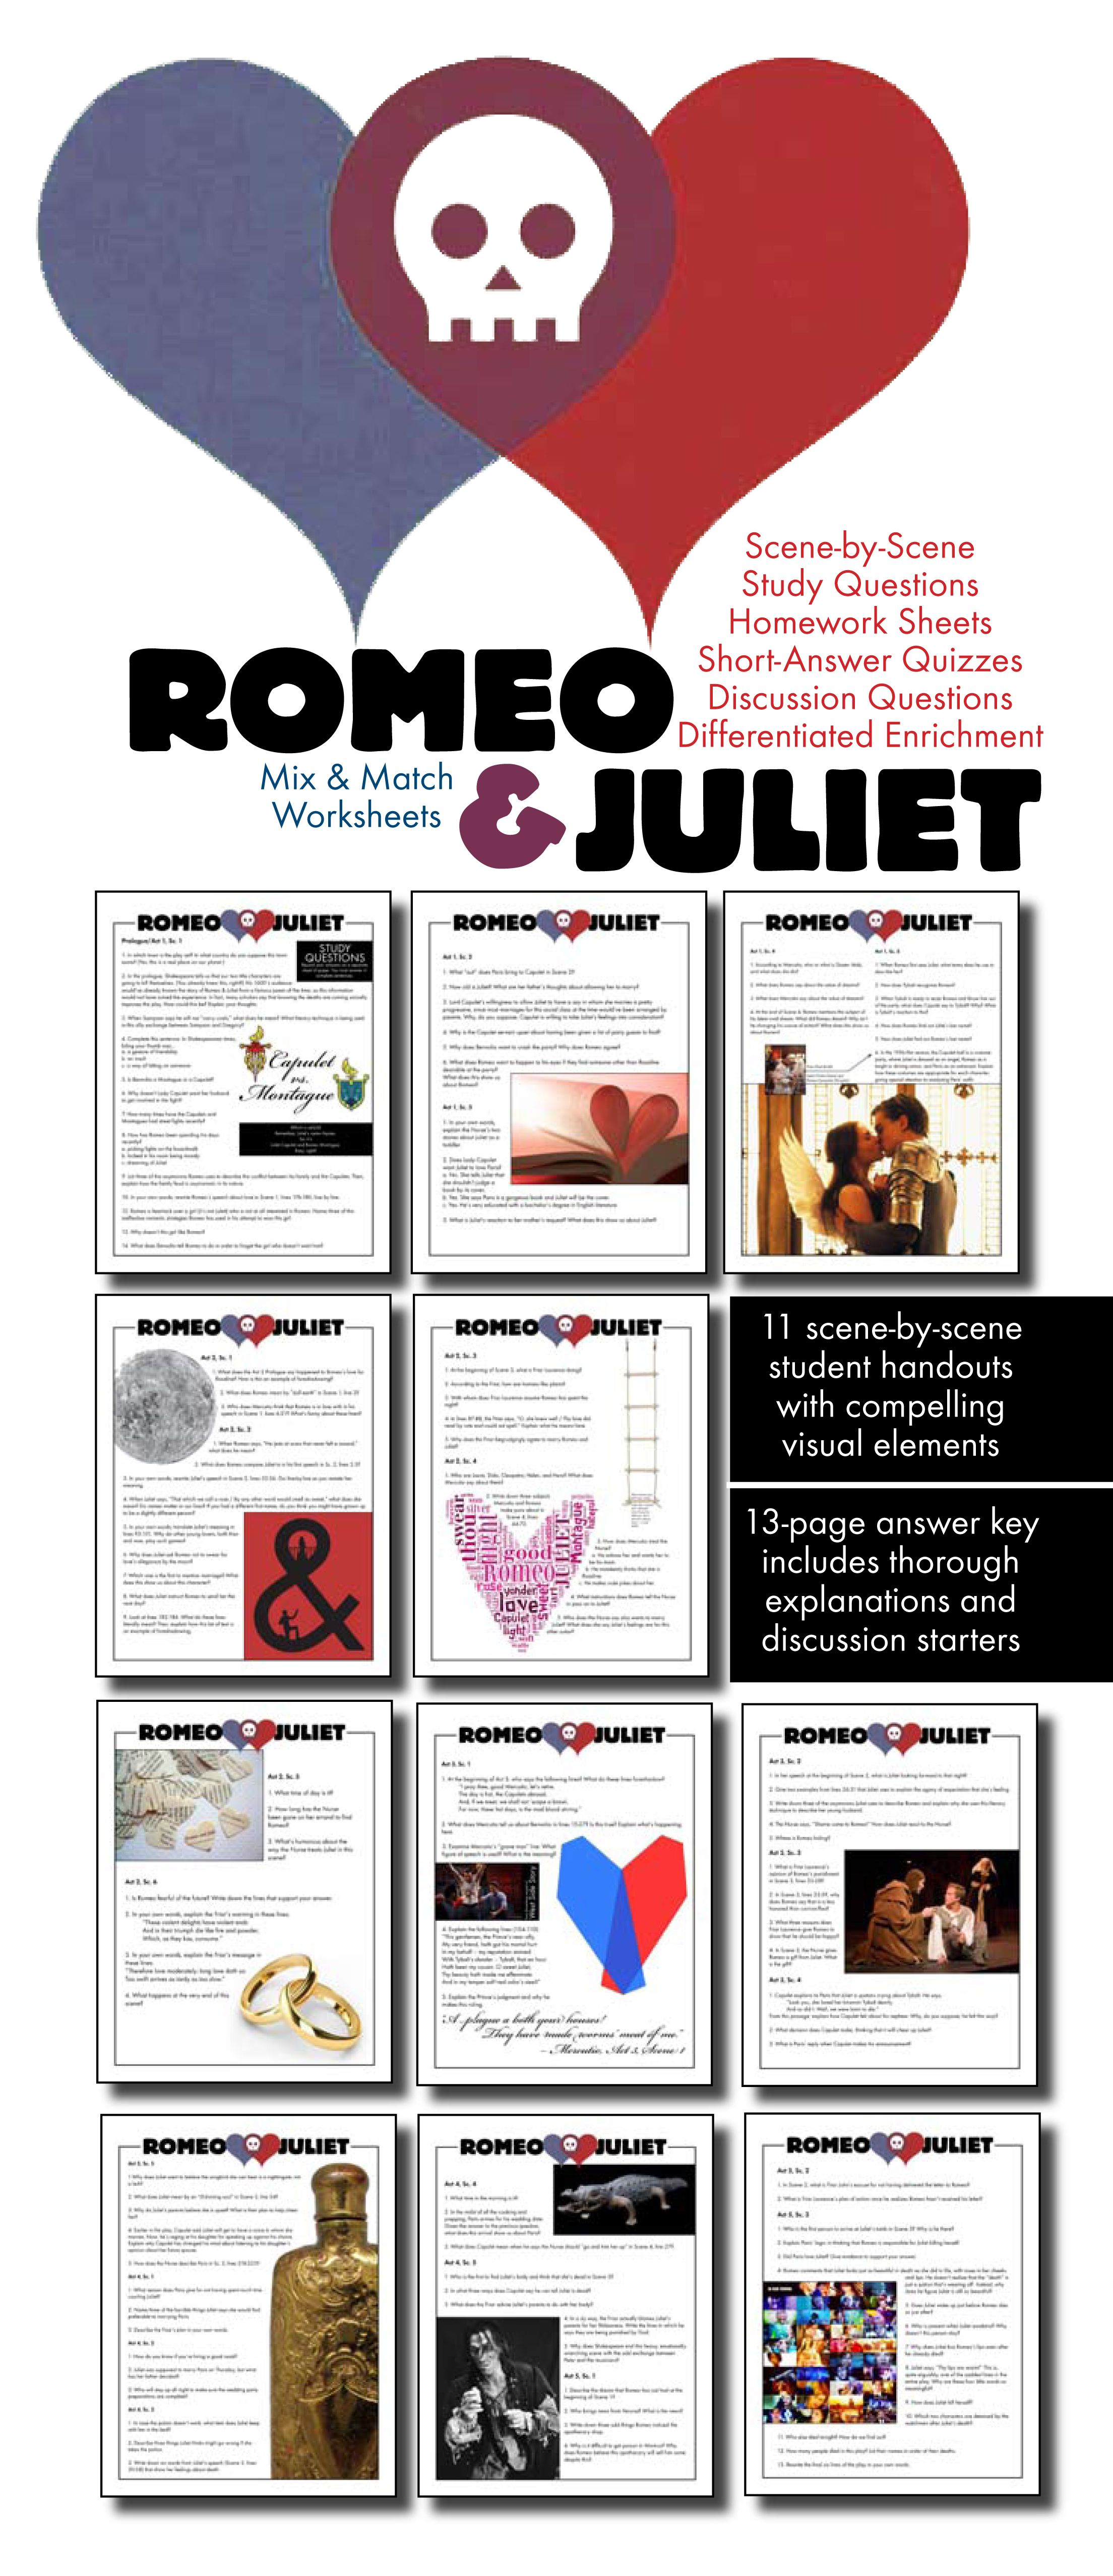 Romeo Amp Juliet Worksheets Quizzes Homework Discussion For Shakespeare S Play